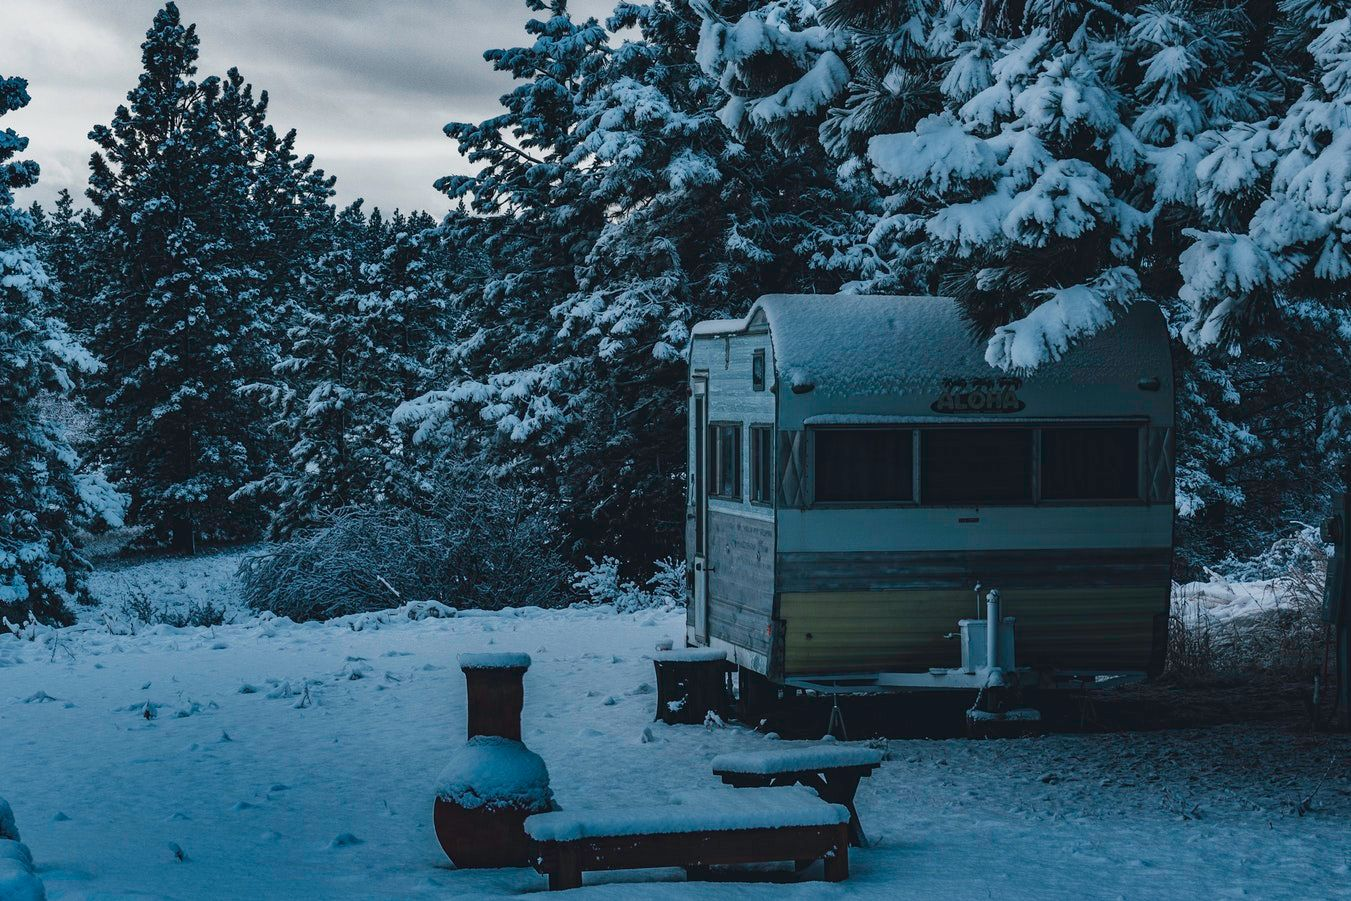 Mike's RV Tips: Winterizing your RV